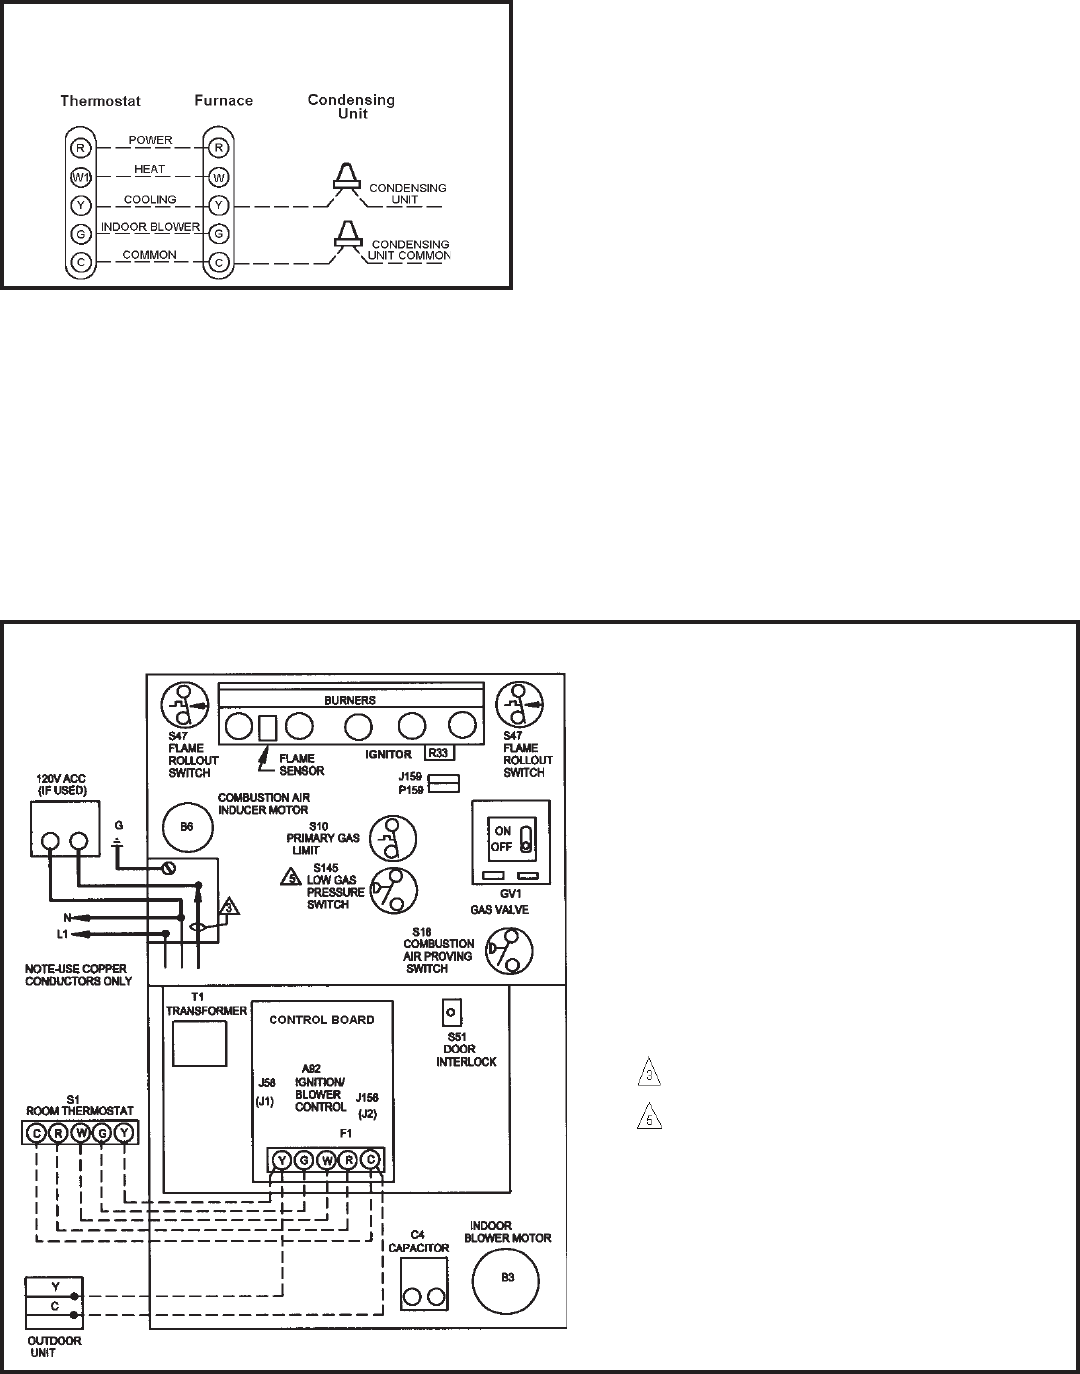 Page 35 of Allied Air Enterprises Furnace 92G1UH User